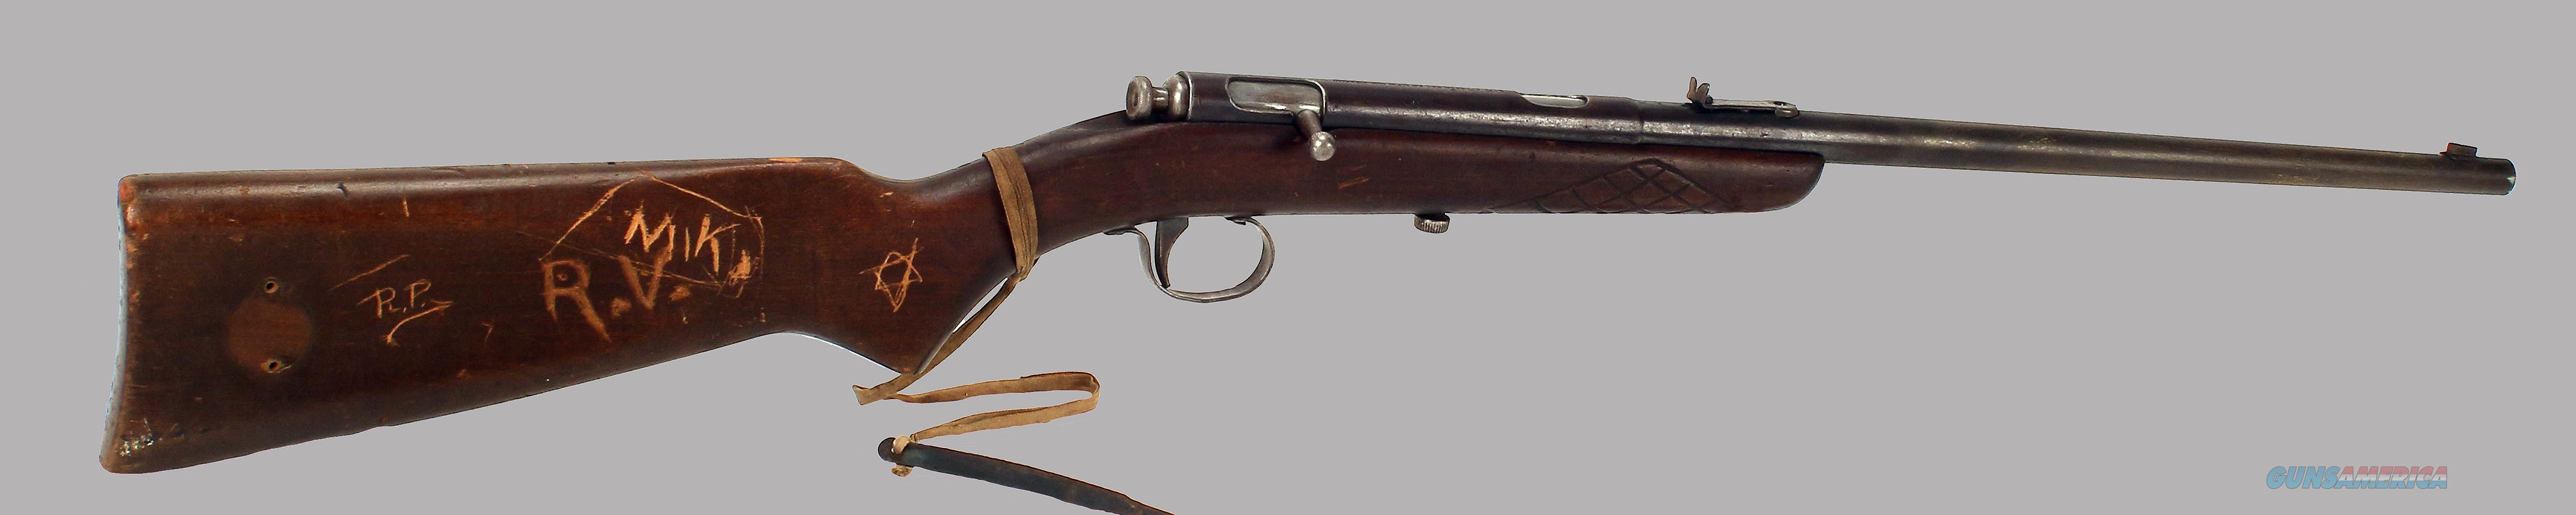 CJ Hamilton & Sons 22LR Model No47 Bolt Action Single Shot Rifle  Guns > Rifles > C Misc Rifles